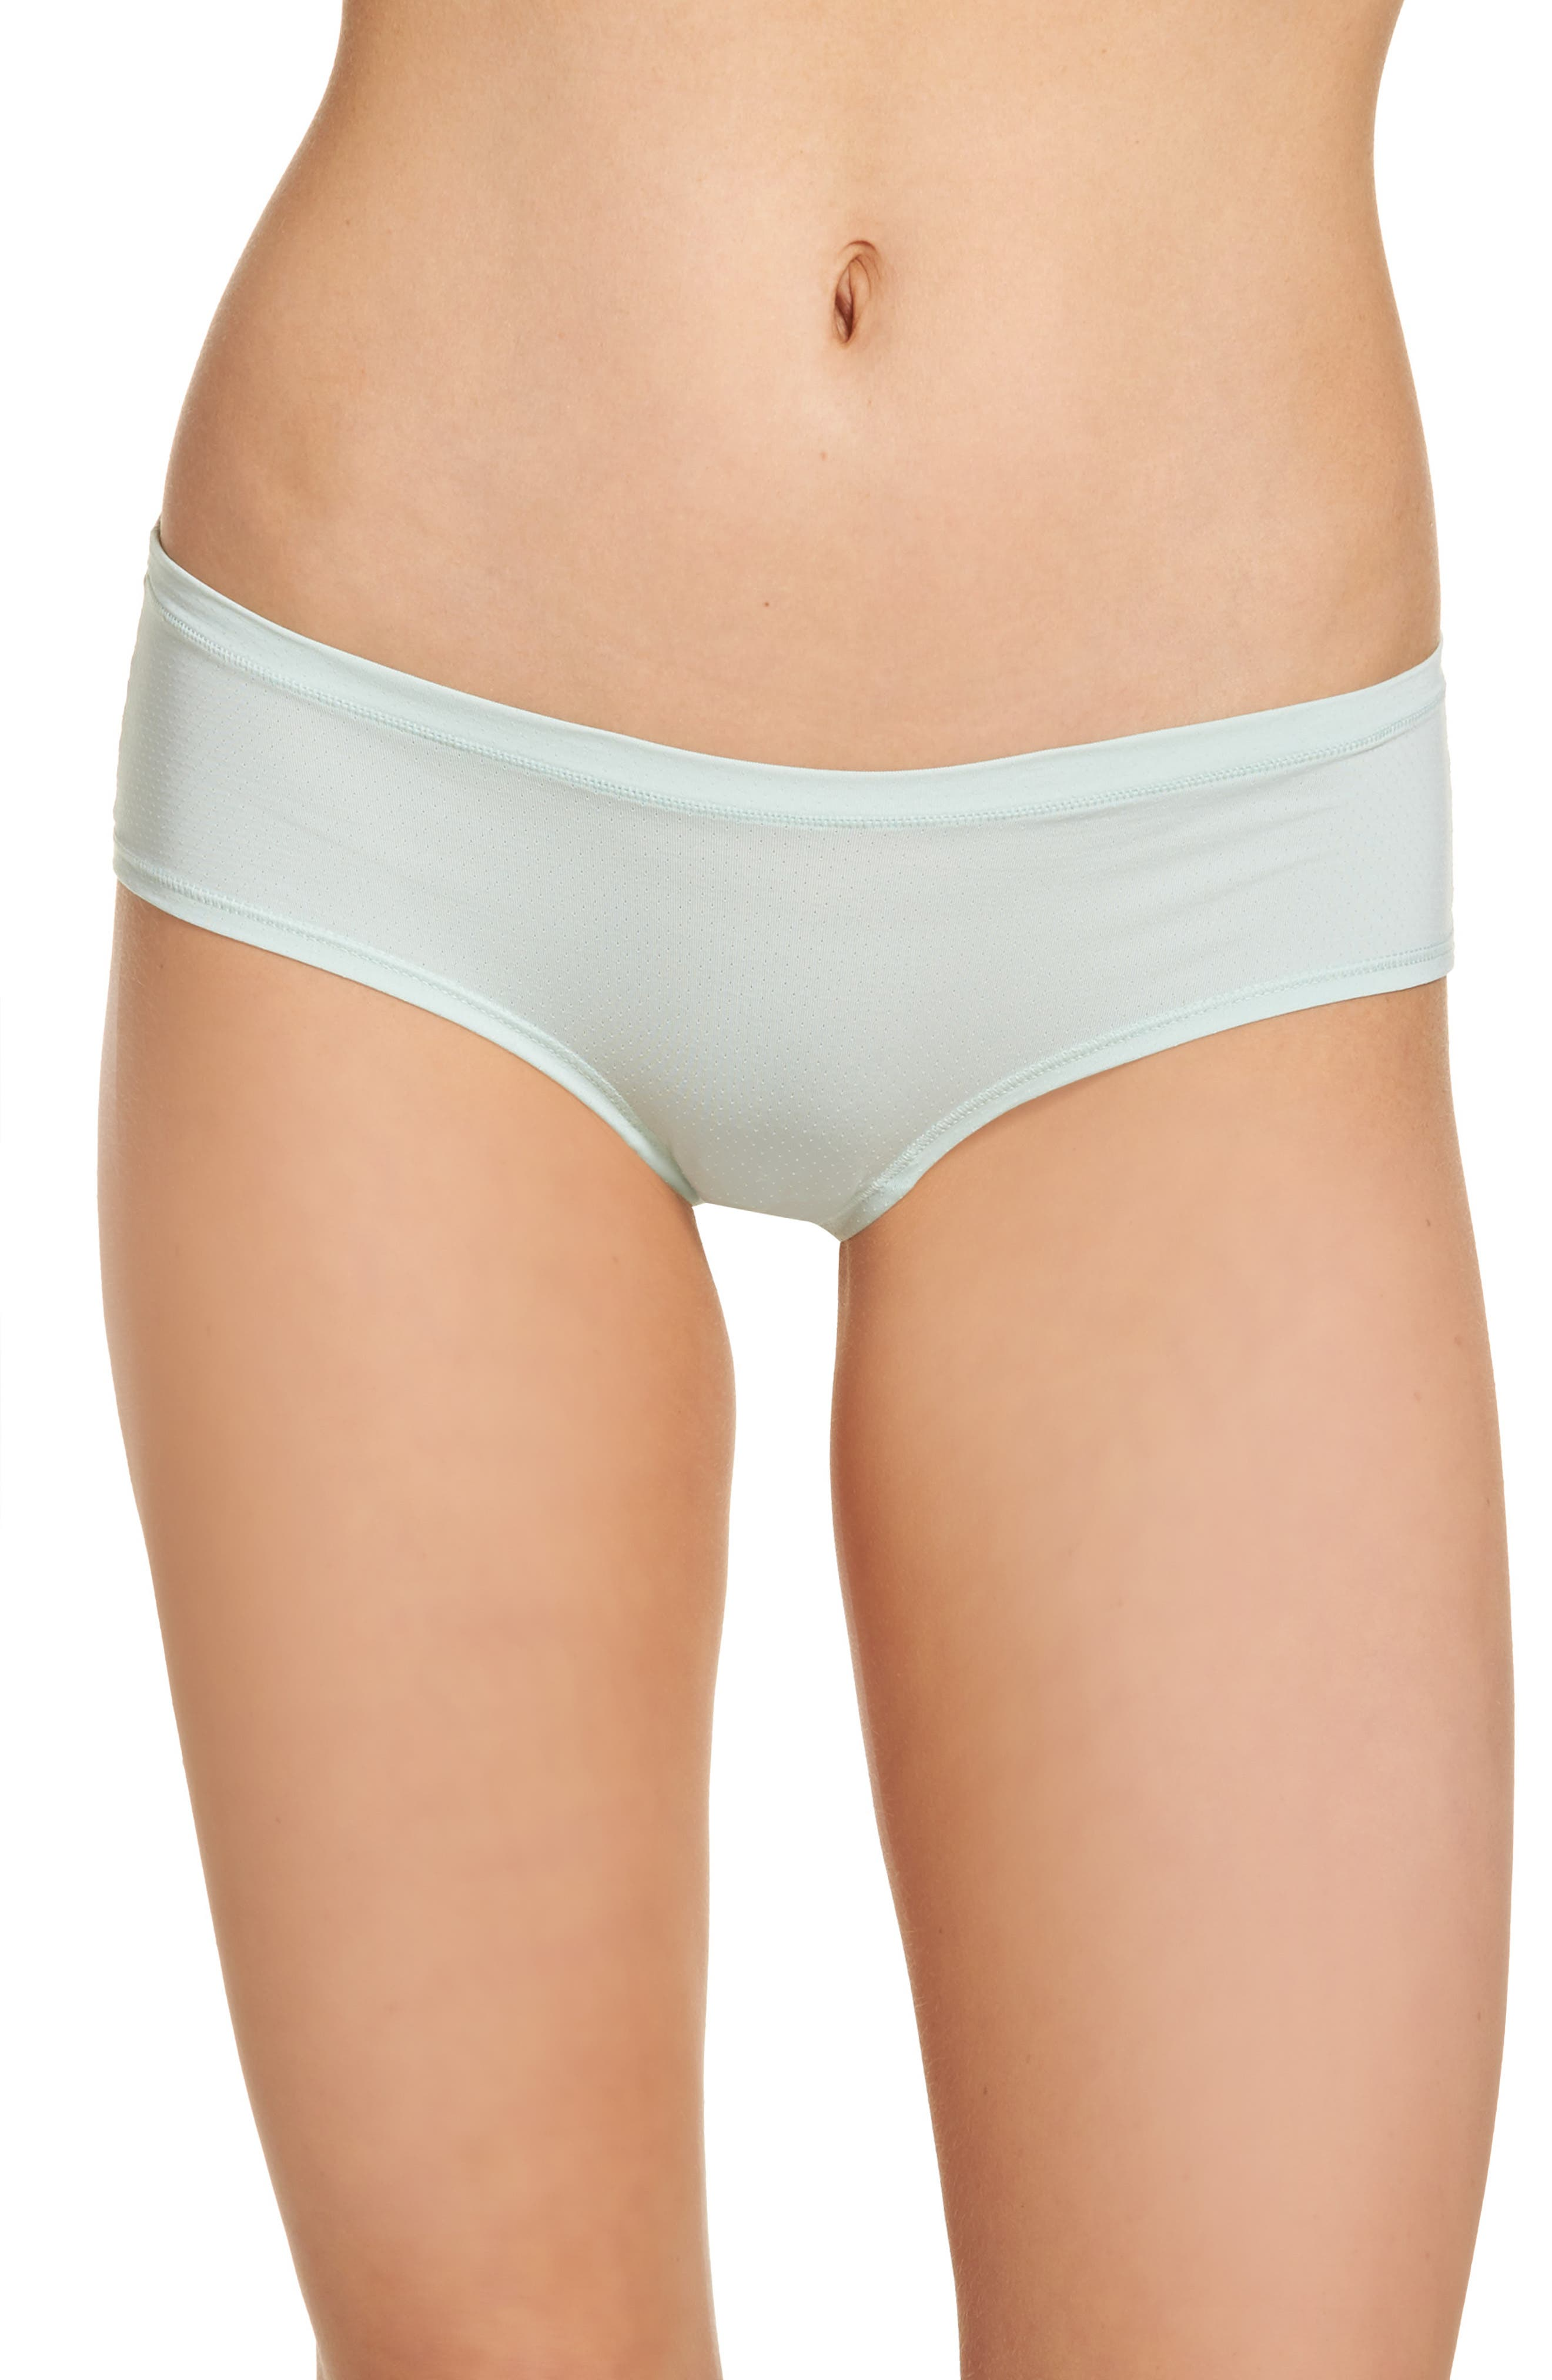 Main Image - Zella Body Active Mesh Hipster Briefs (3 for $33)